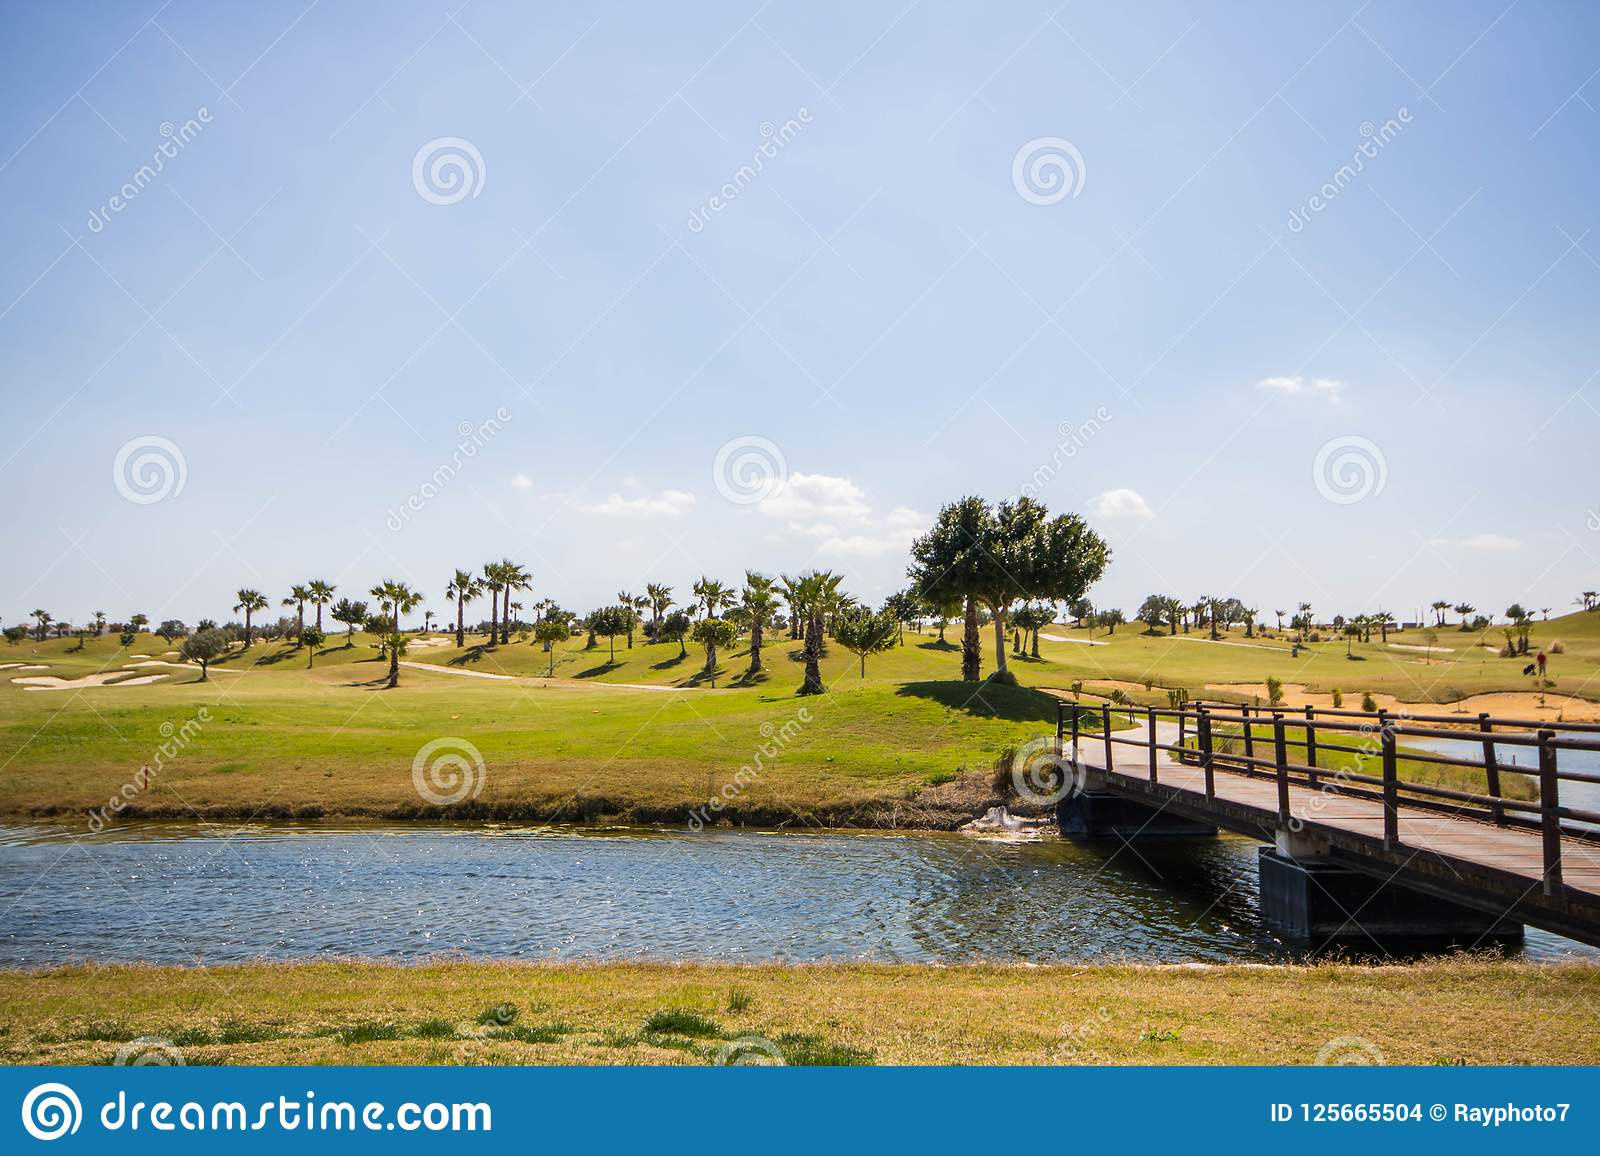 Wooden bridge over the lake in a golf course on a summer day with clear blue sky